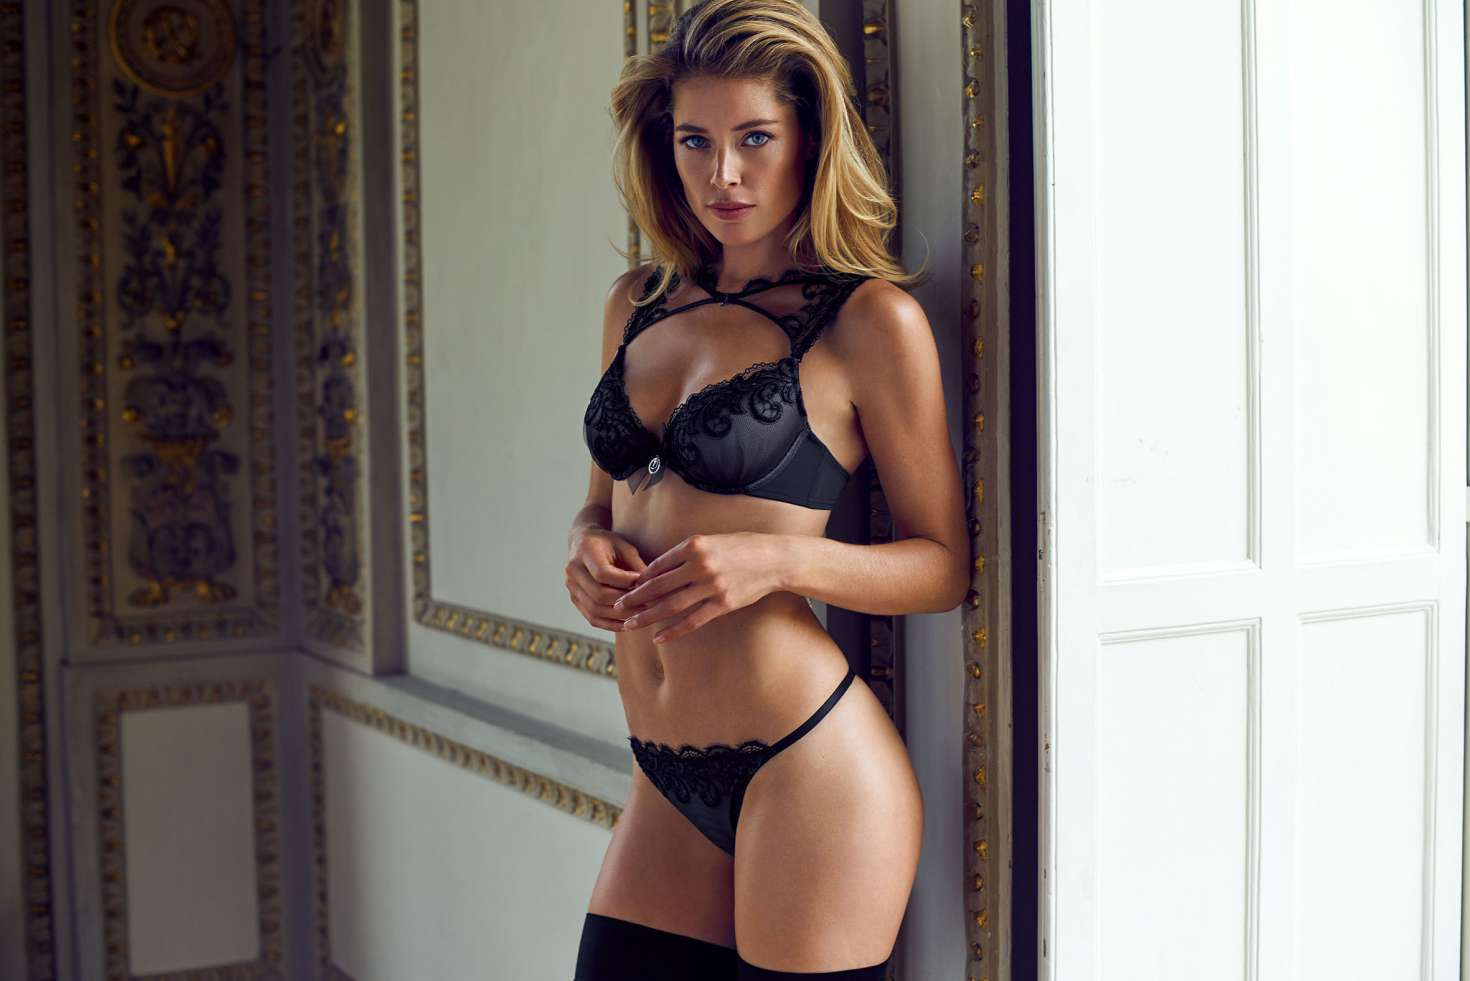 Doutzen Kroes – Hunkemoller Photoshoot 2016   Doutzen-Kroes:-Hunkemoller-Photoshoot-2016--19